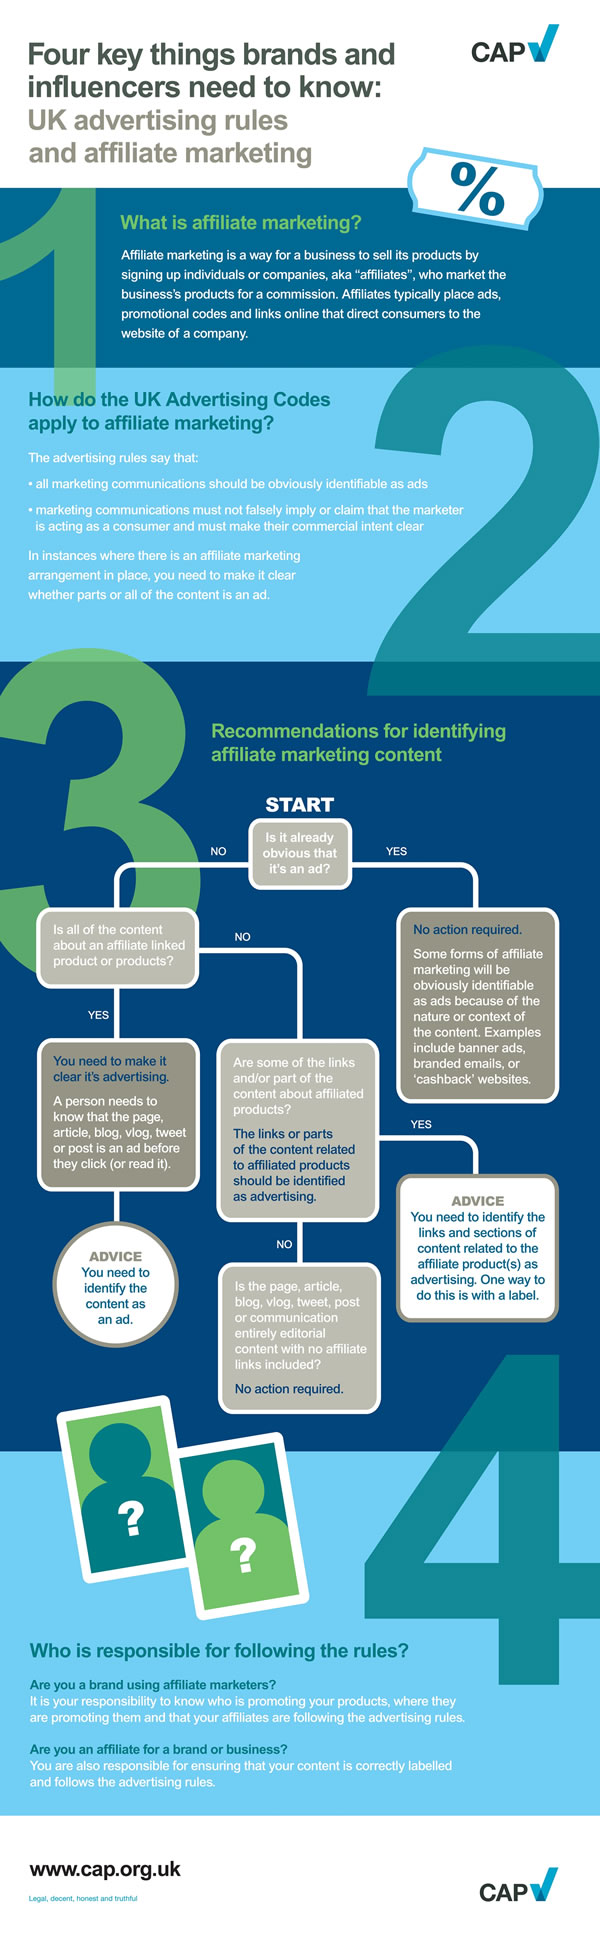 CAP Affiliate Marketing Infographic. Image credit: Advertising Standards Authority.